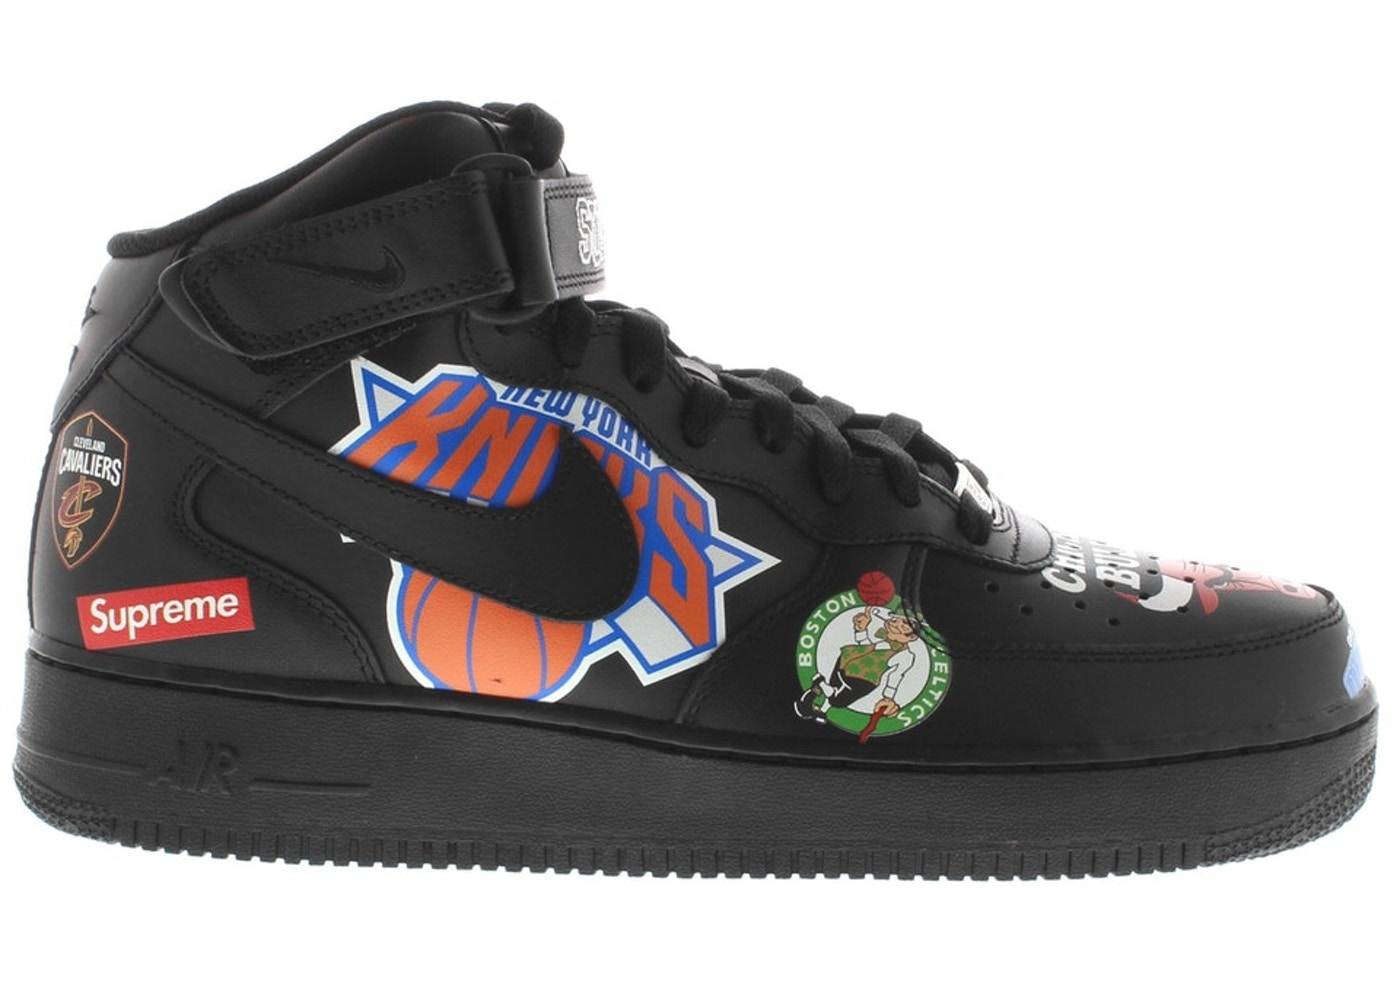 Air Force 1 Mid Supreme NBA Black - AQ8017-001 b3219d7e0